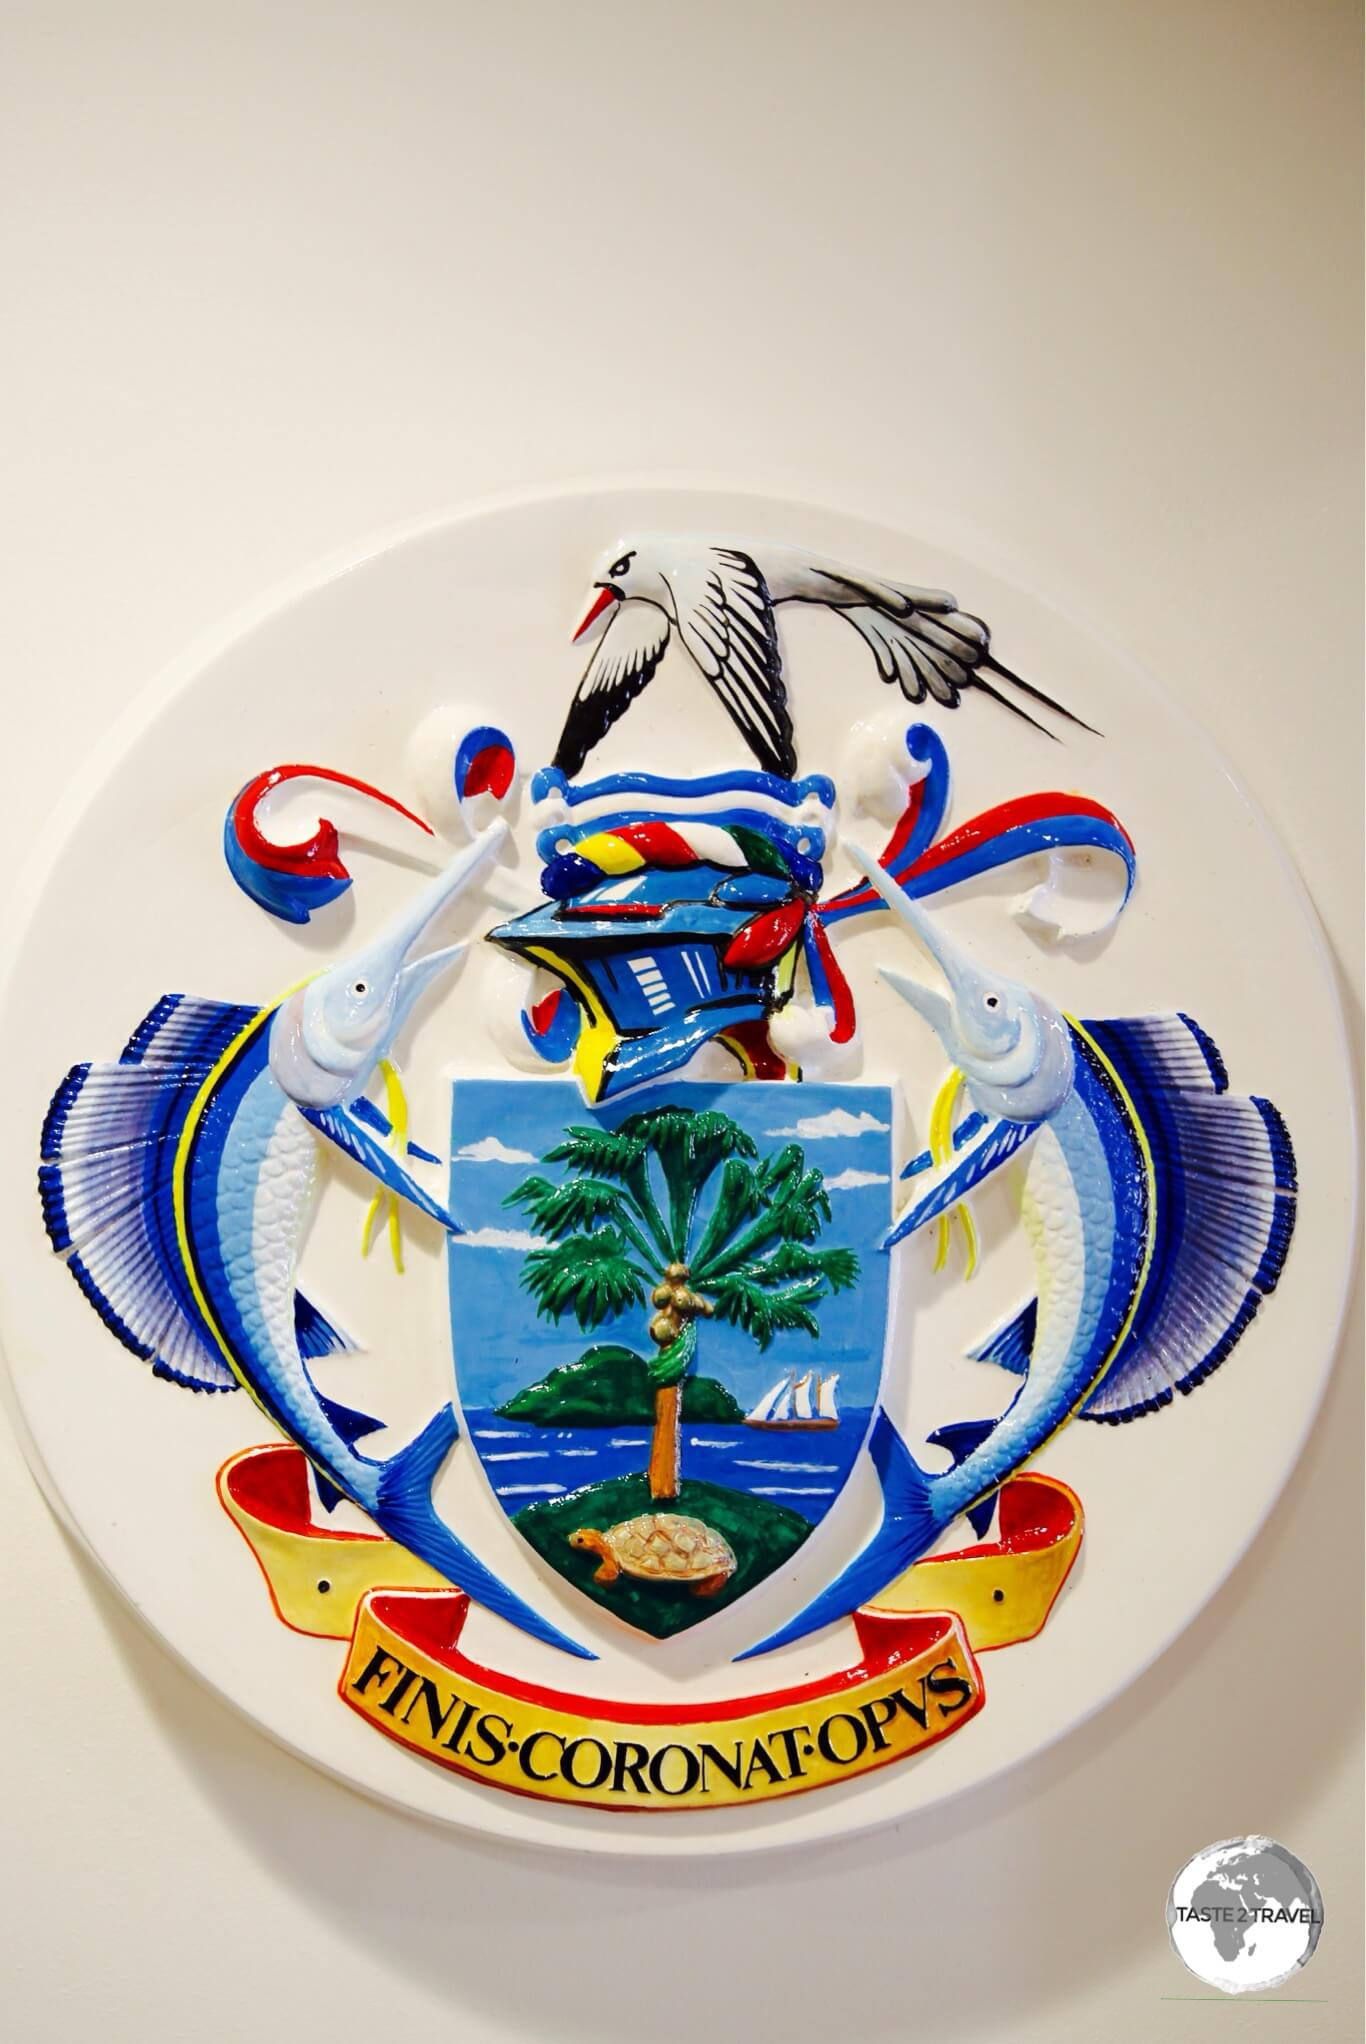 The Coat of arms of the Seychelles on display at the National Museum of History in Victoria.